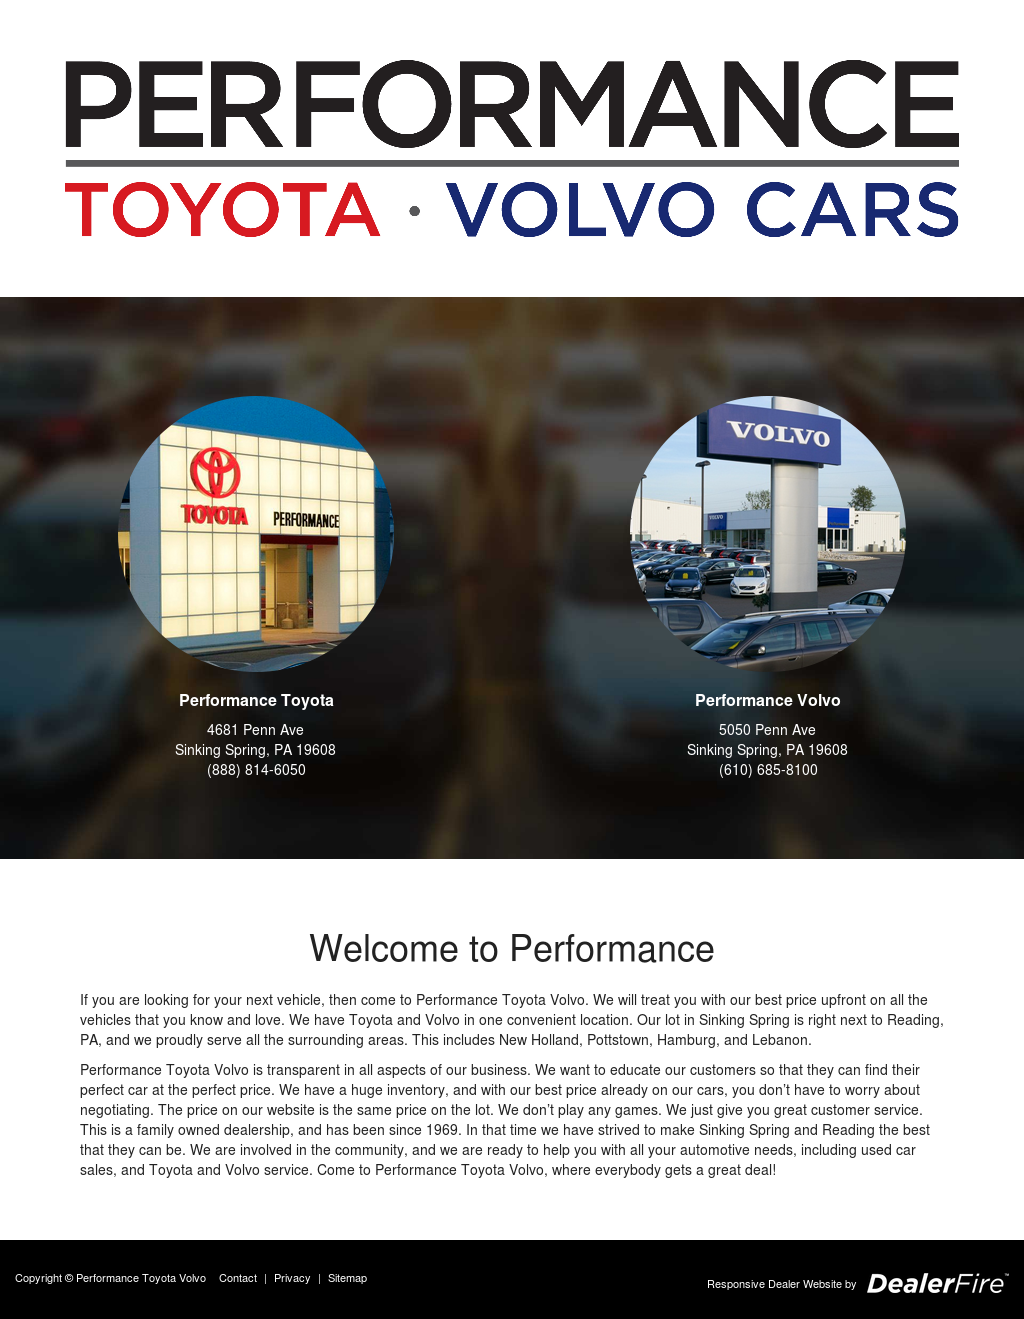 Performance Toyota Volvo Competitors, Revenue And Employees   Owler Company  Profile